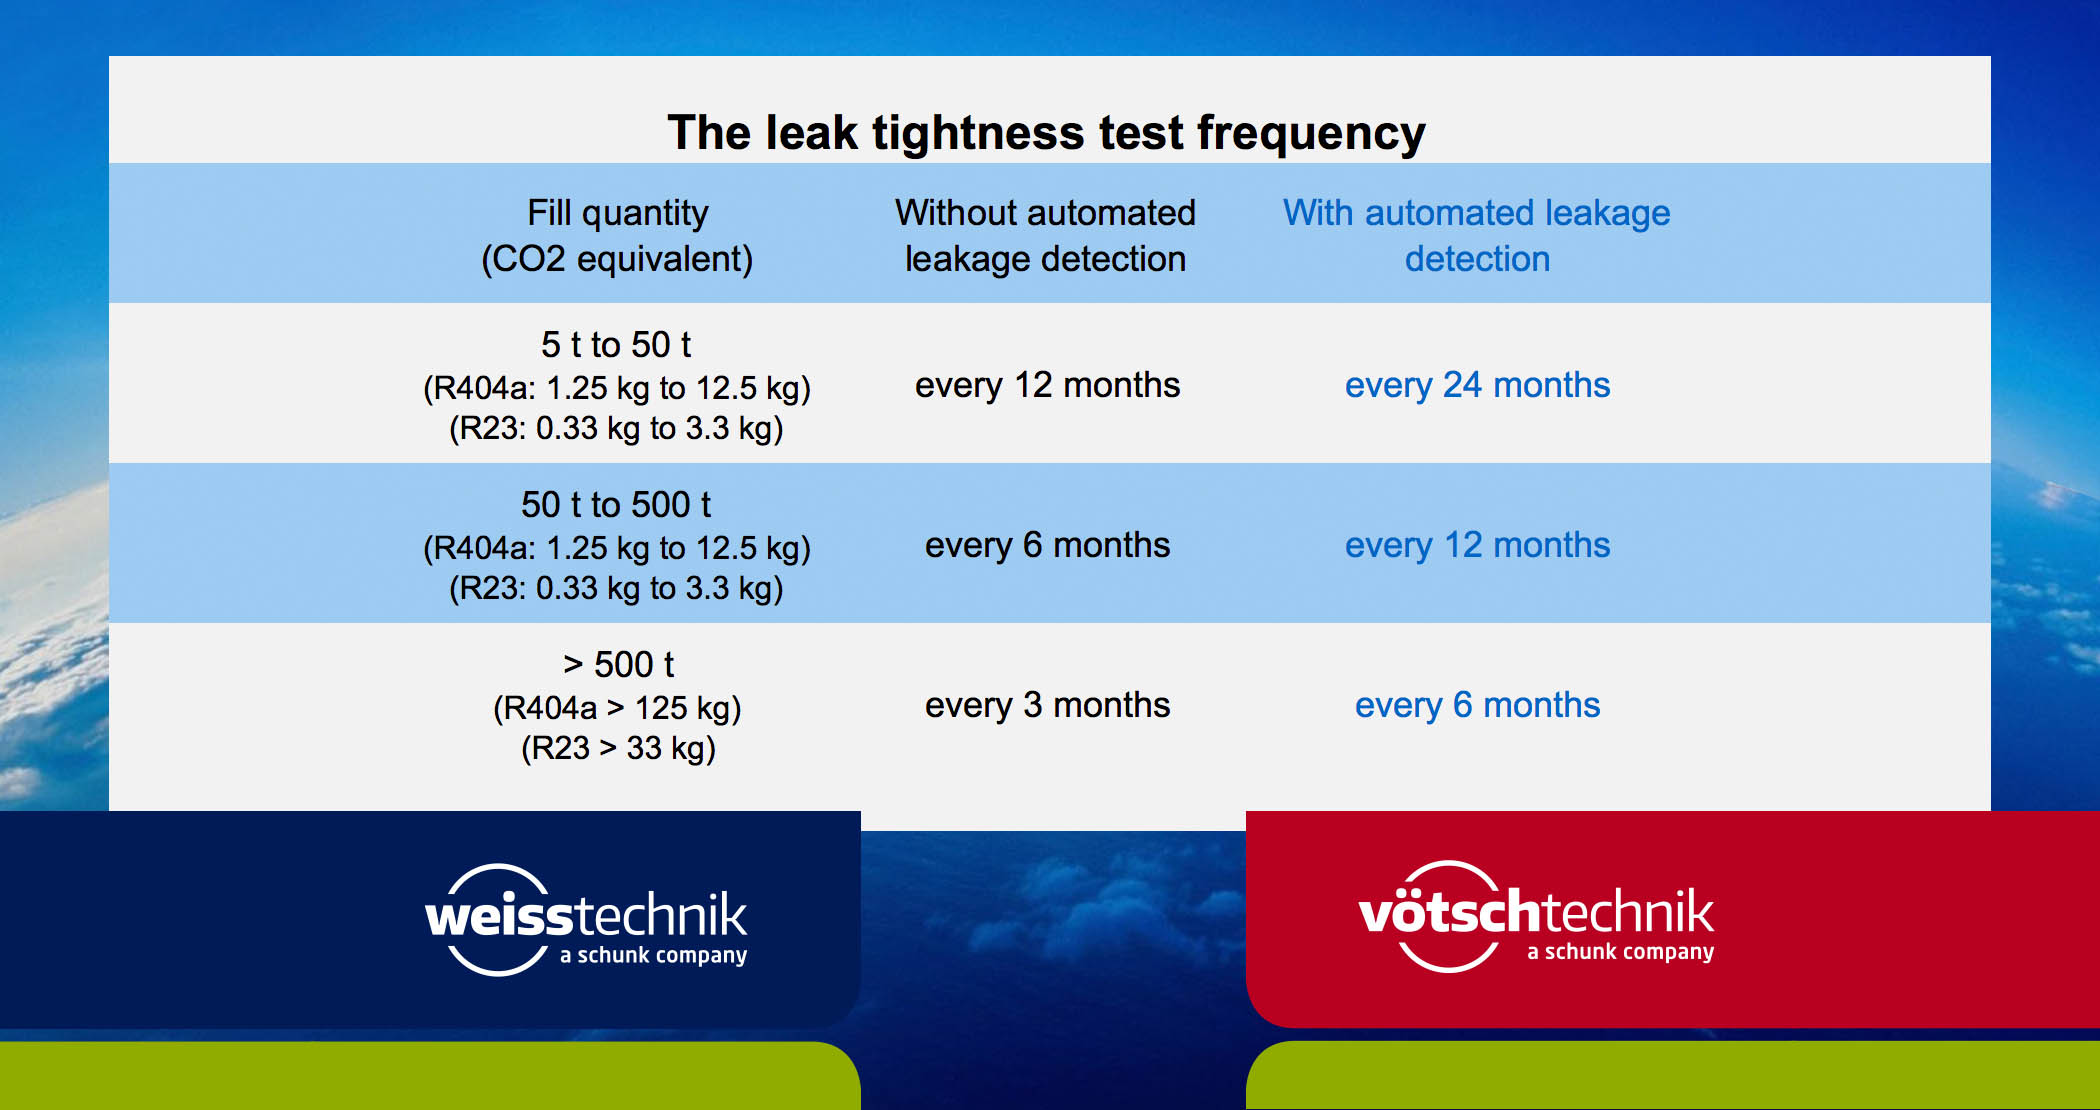 The leak tightness test frequency